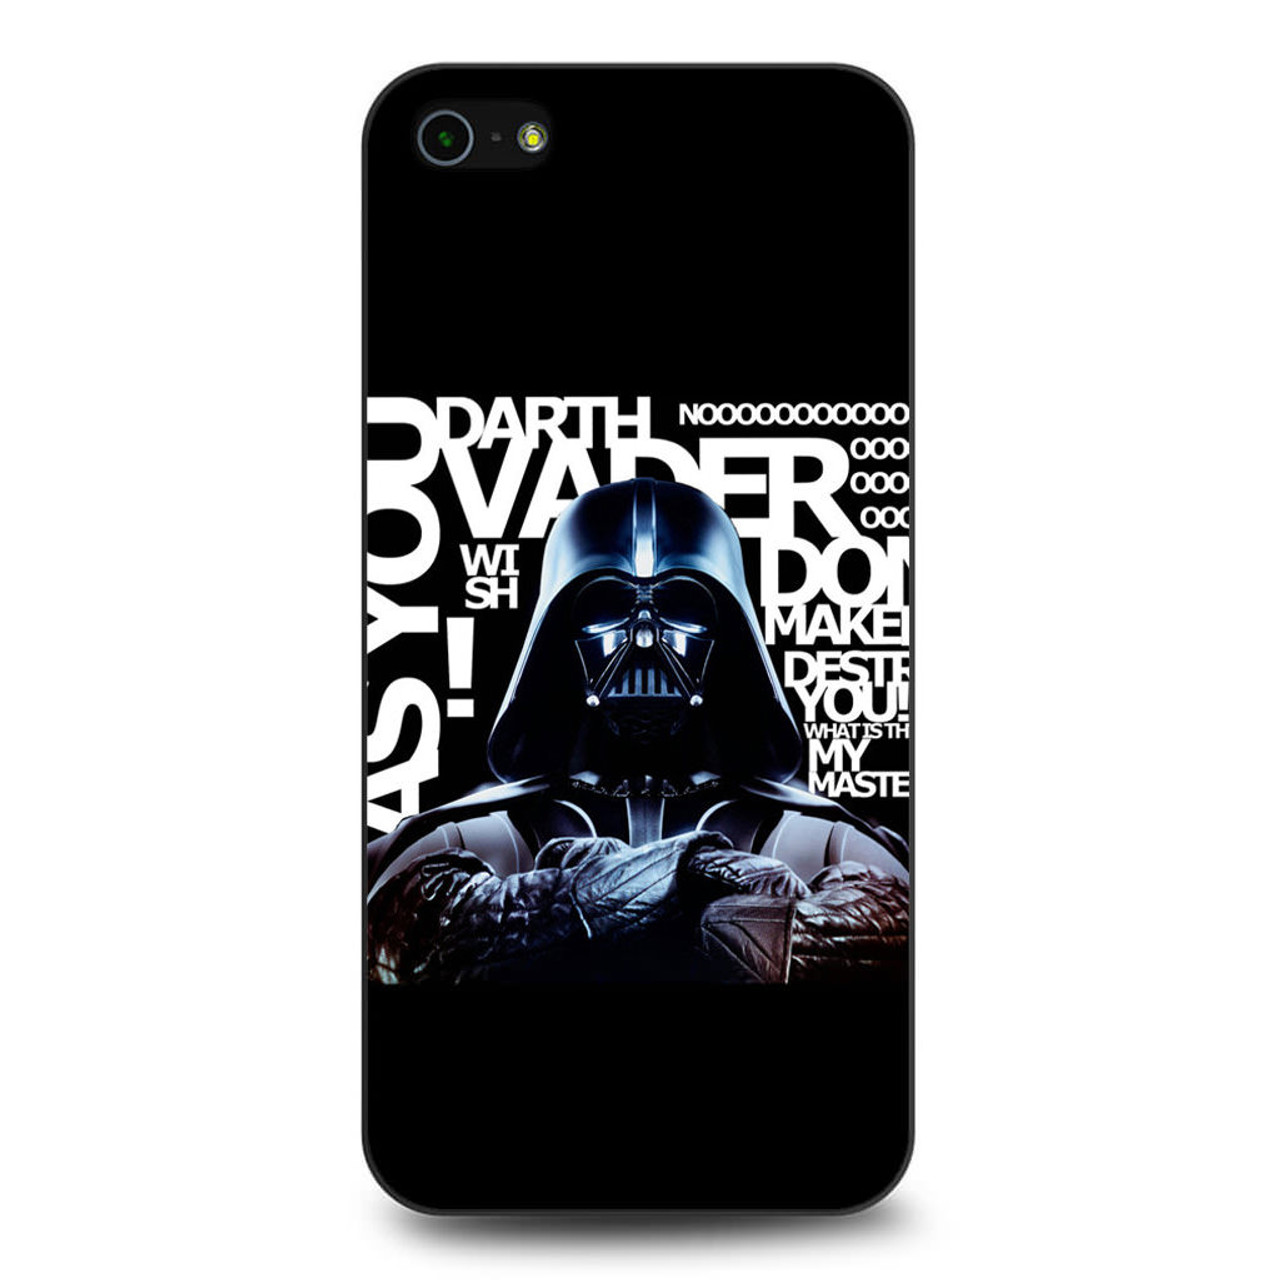 sale retailer 6a45a 273f7 Star Wars Darth Vader Quotes iPhone 5/5S/SE Case